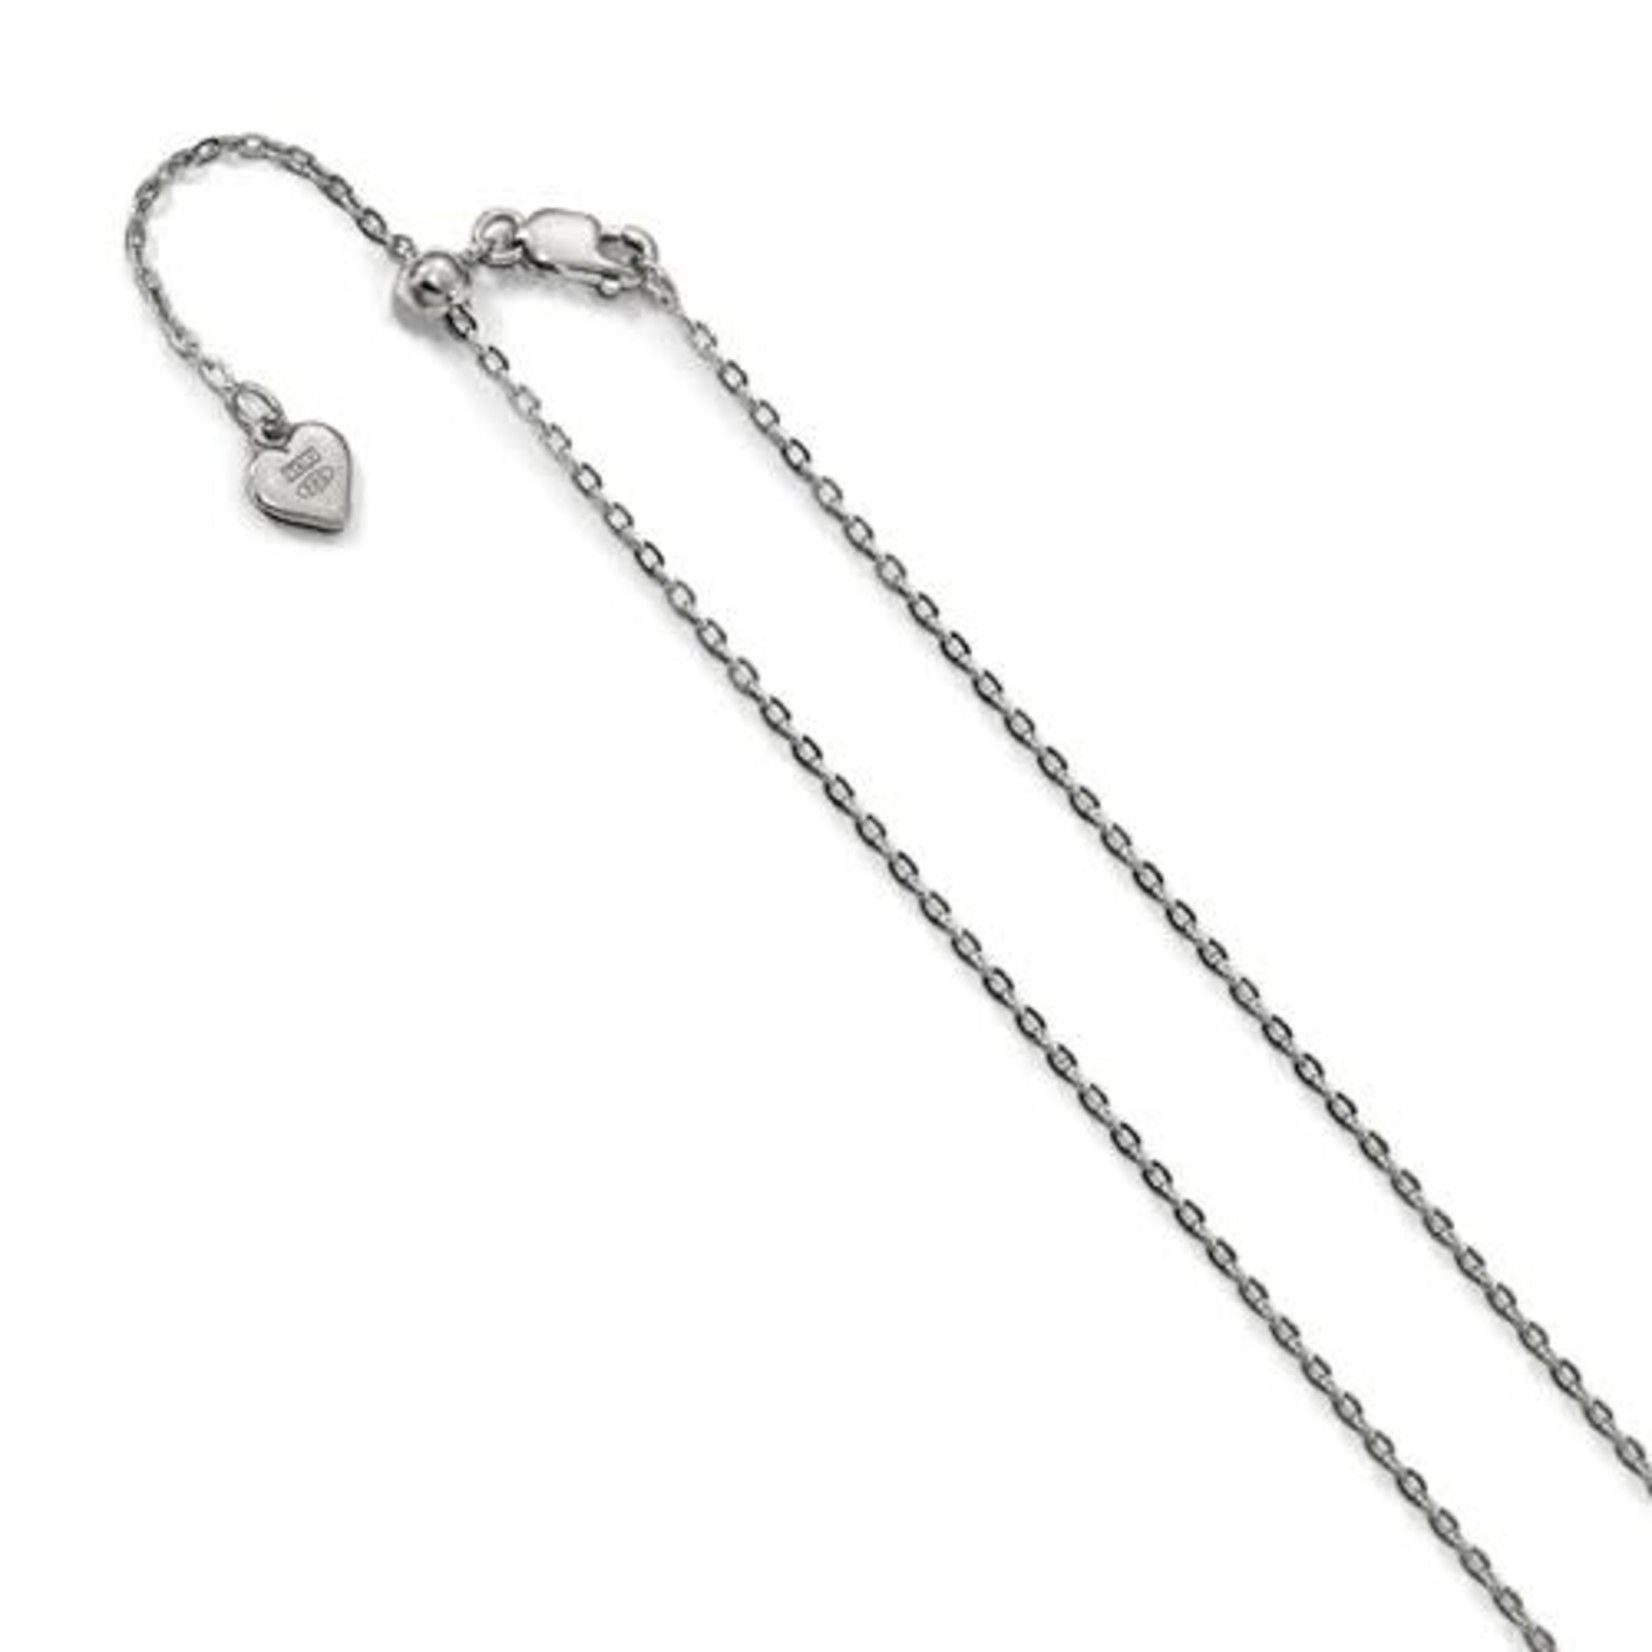 This Is Life Adjustable Cable Chain - Sterling Silver